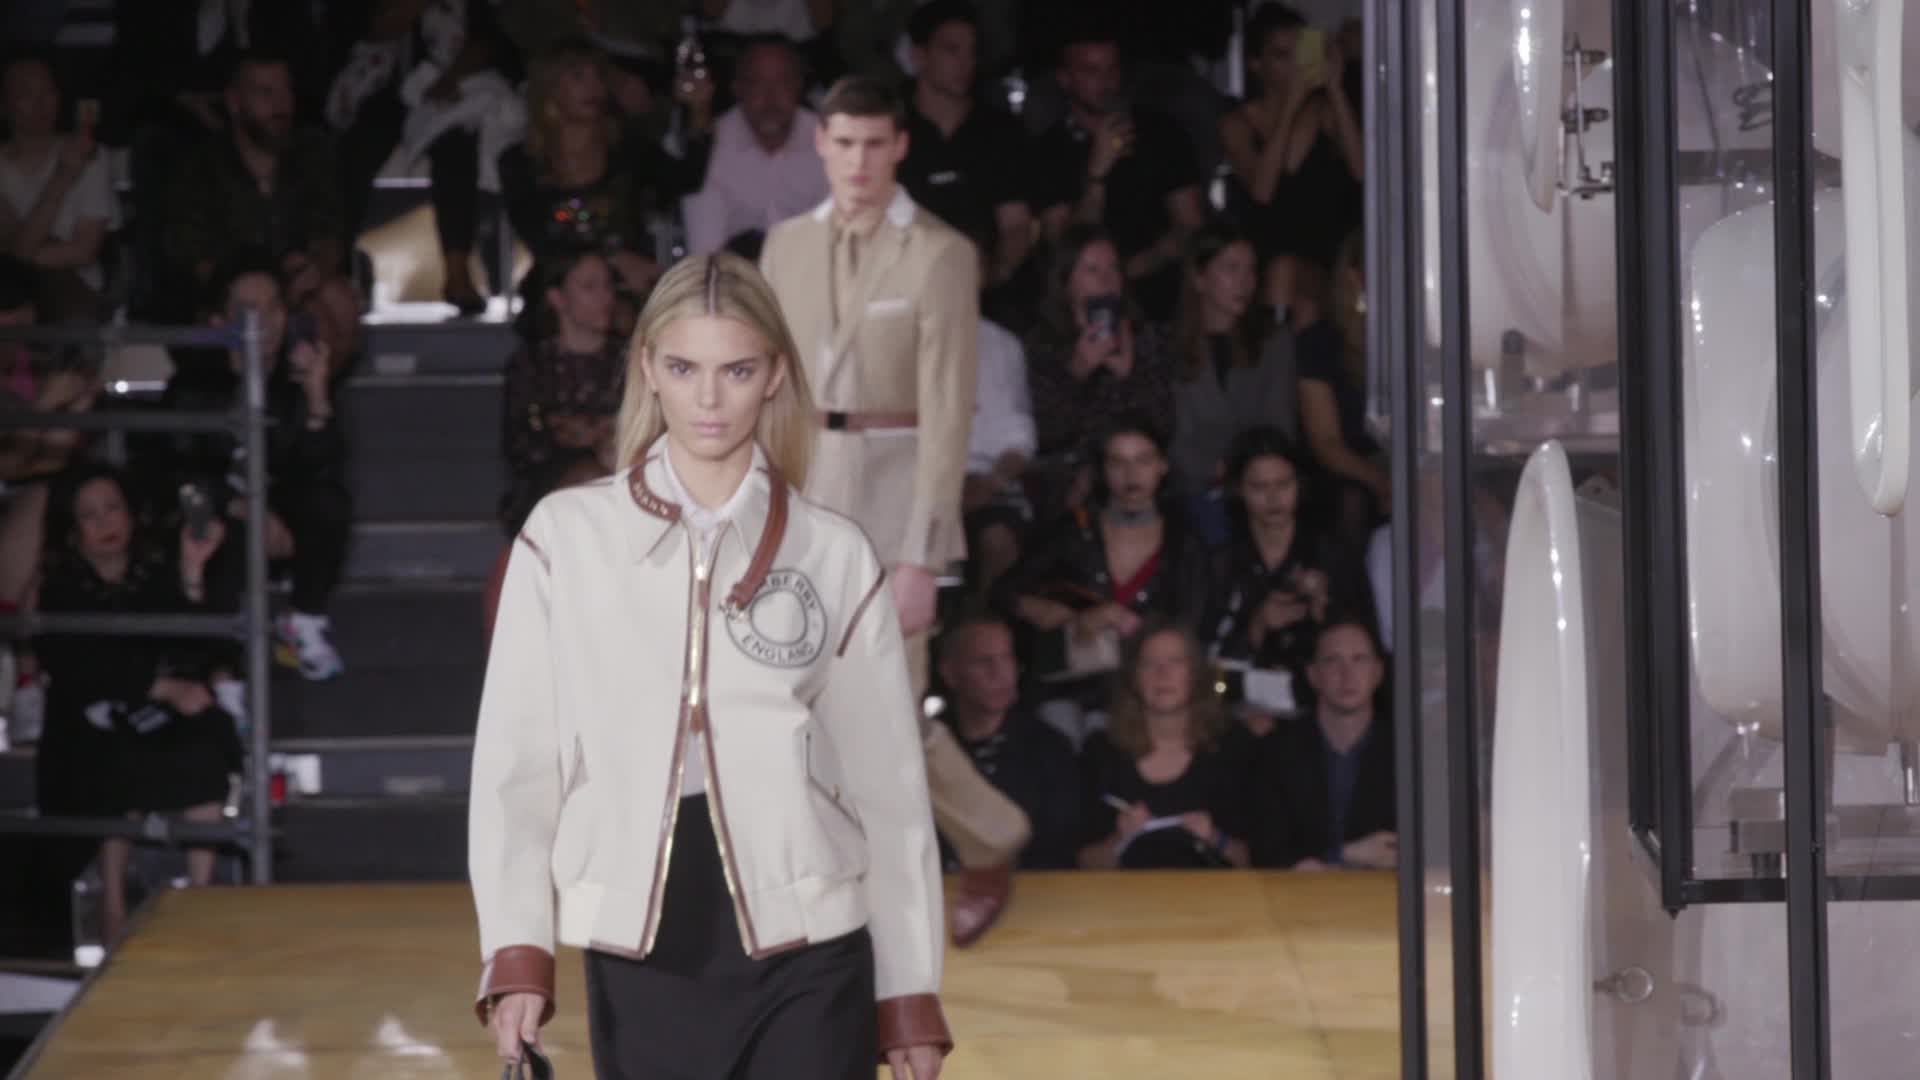 Kendall Jenner Shows Off Blond Hair At London Fashion Week